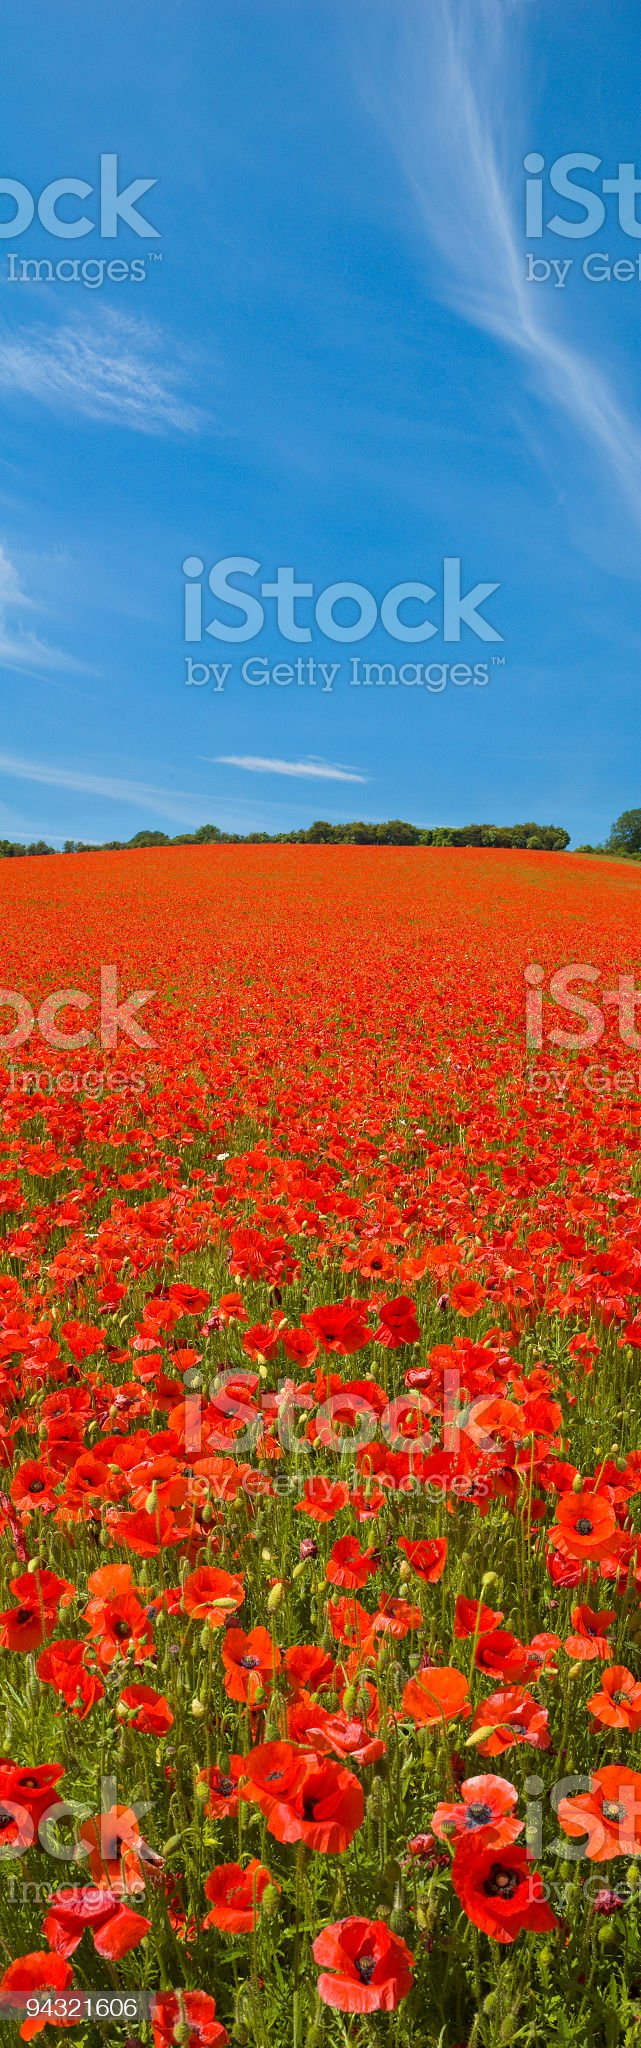 Bright red poppies, blue sky royalty-free stock photo